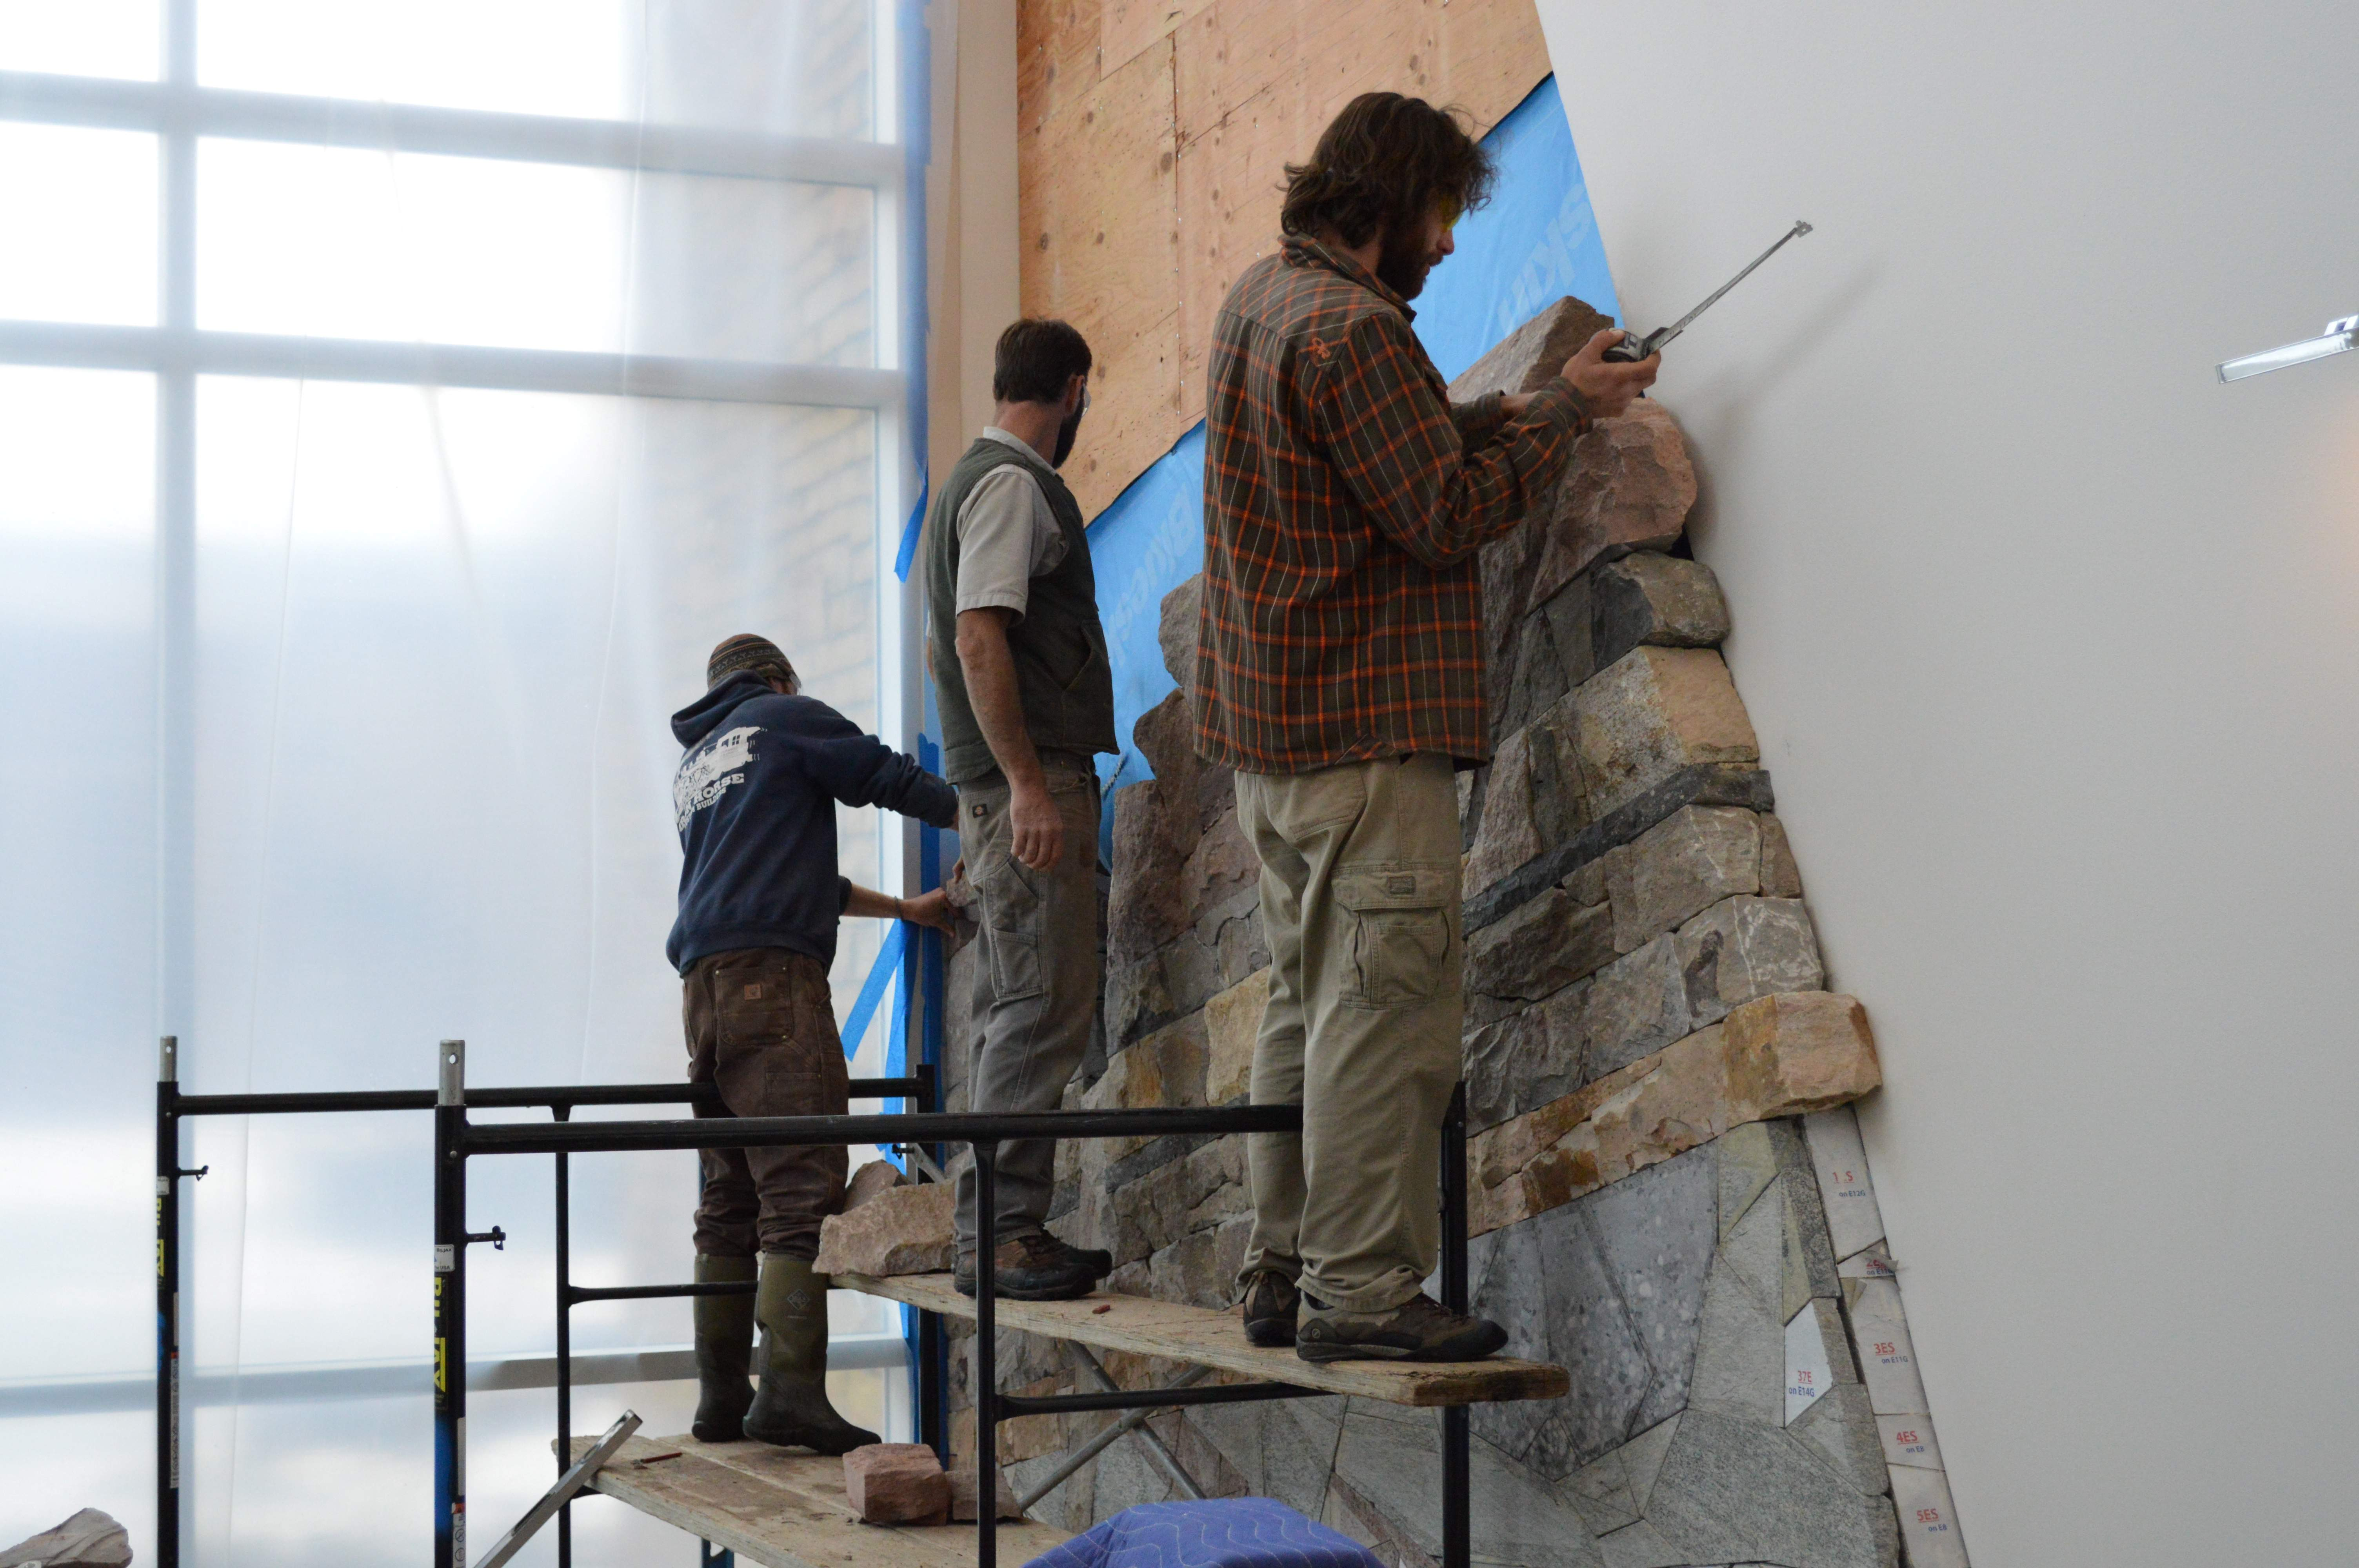 Masons From Canyon Landscape U2013 From Left, Walker Rodham, Erik Lewis And Van  Lancaster U2013 Build The Geologic Wall Of Time In The New Geosciences, ...